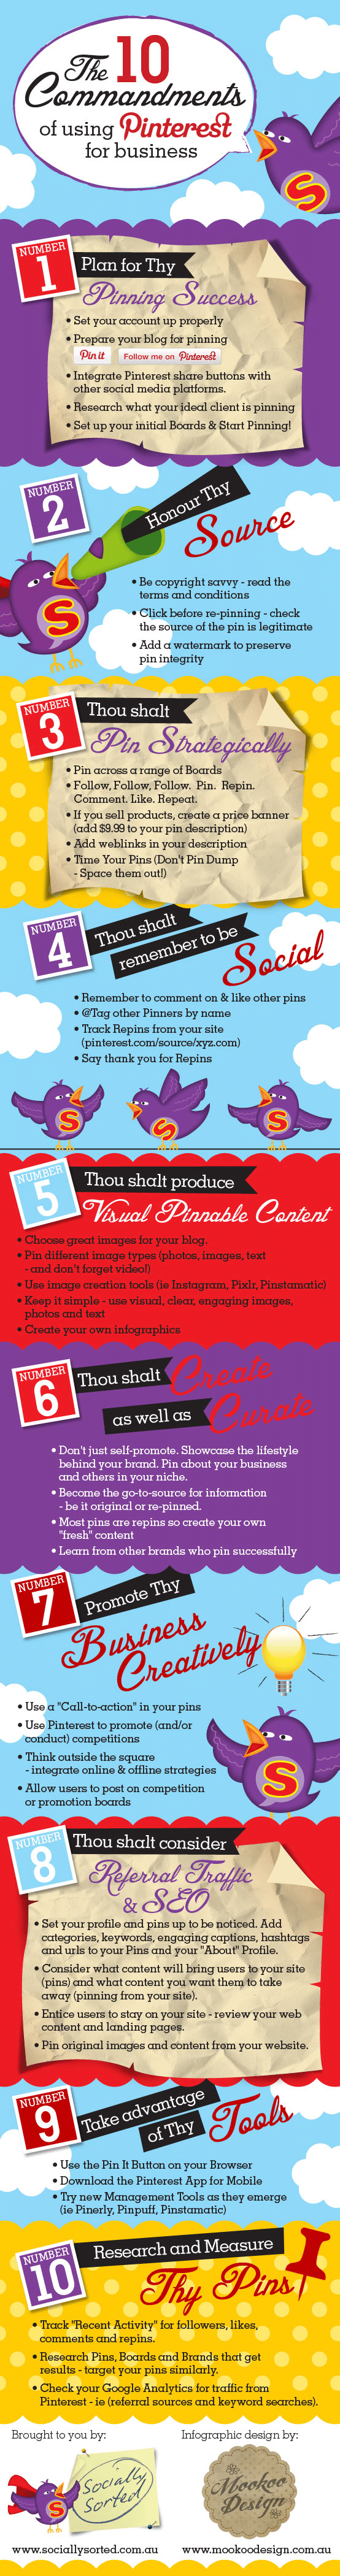 The 10 Commandments Of Using Pinterest For Business [Infographic]